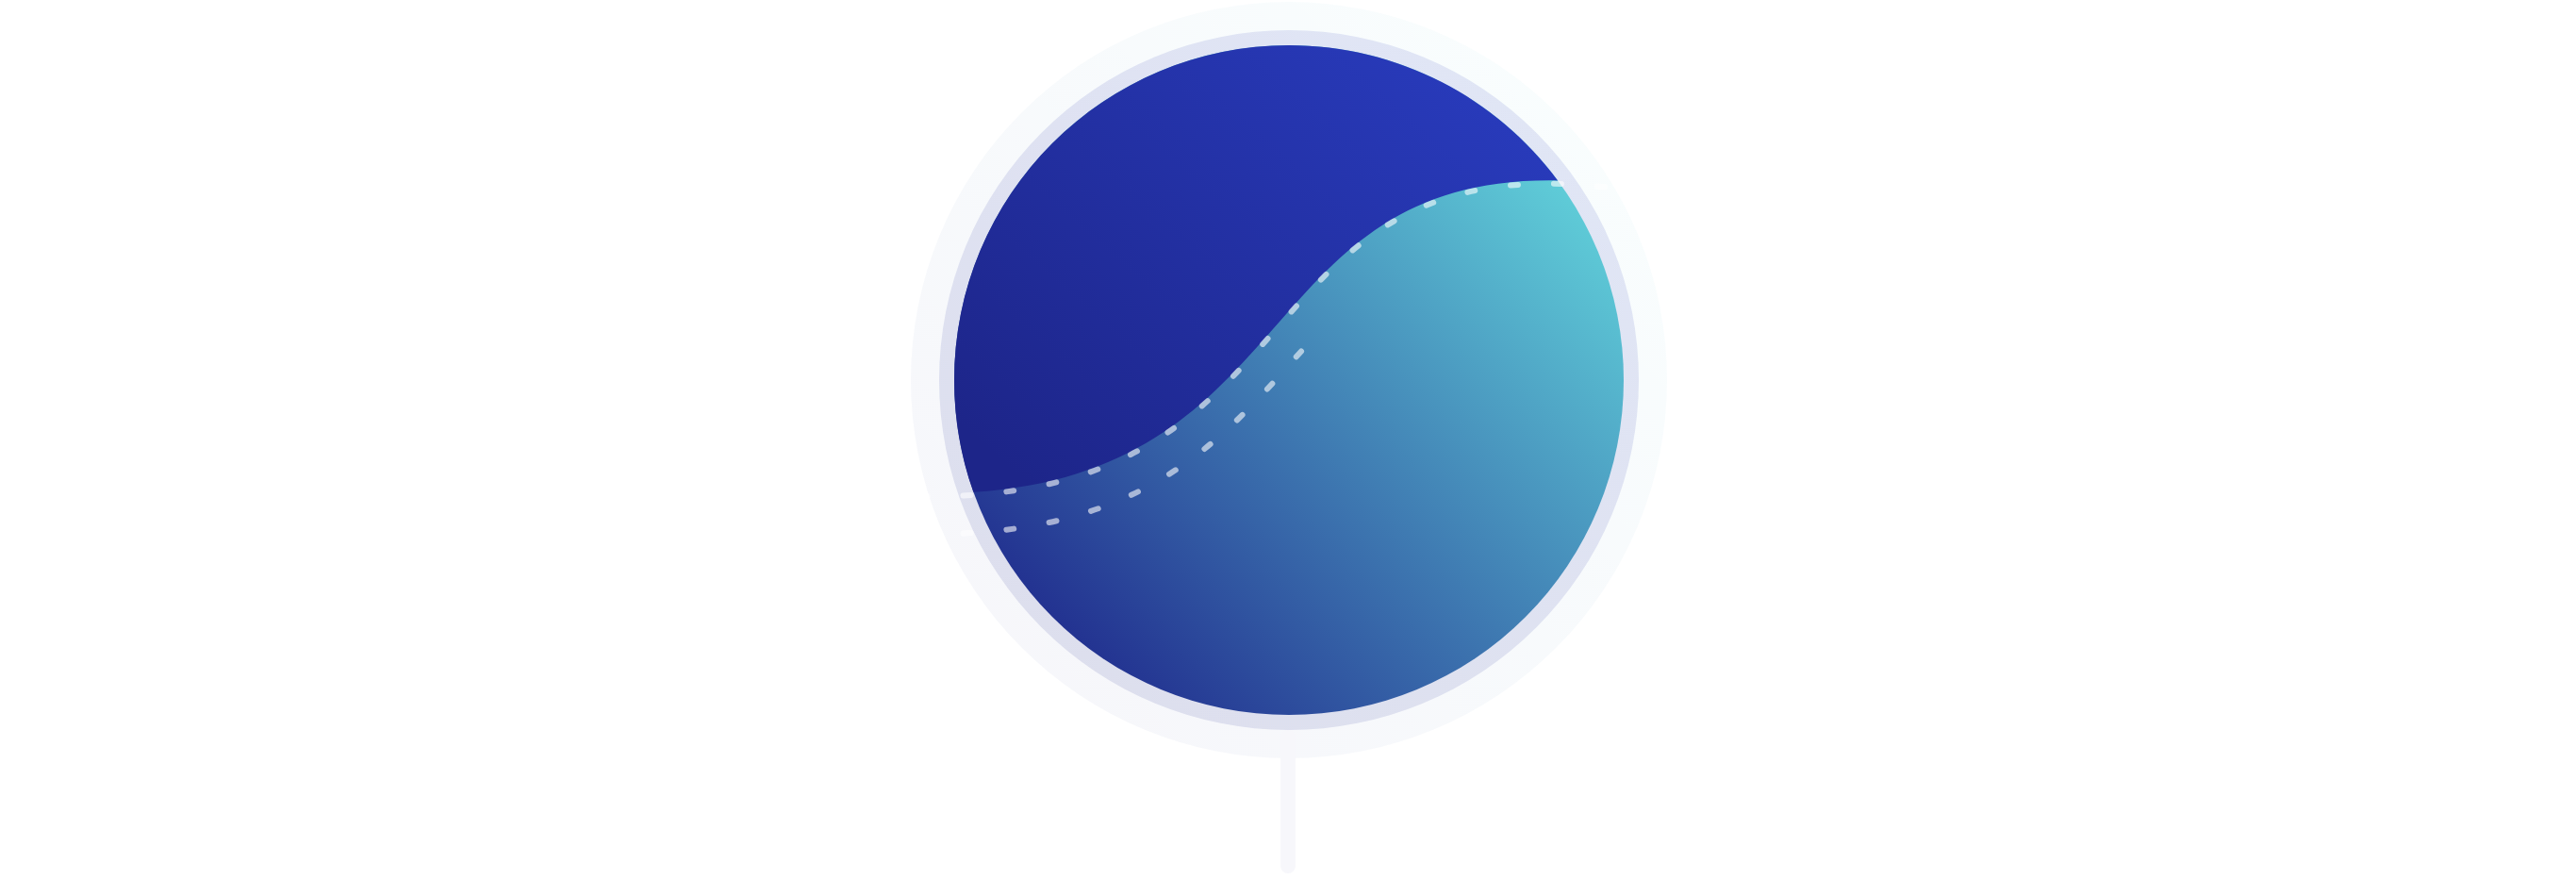 Illustration showing a flowing upwards trend that symbolizes the continual improvement of design systems.